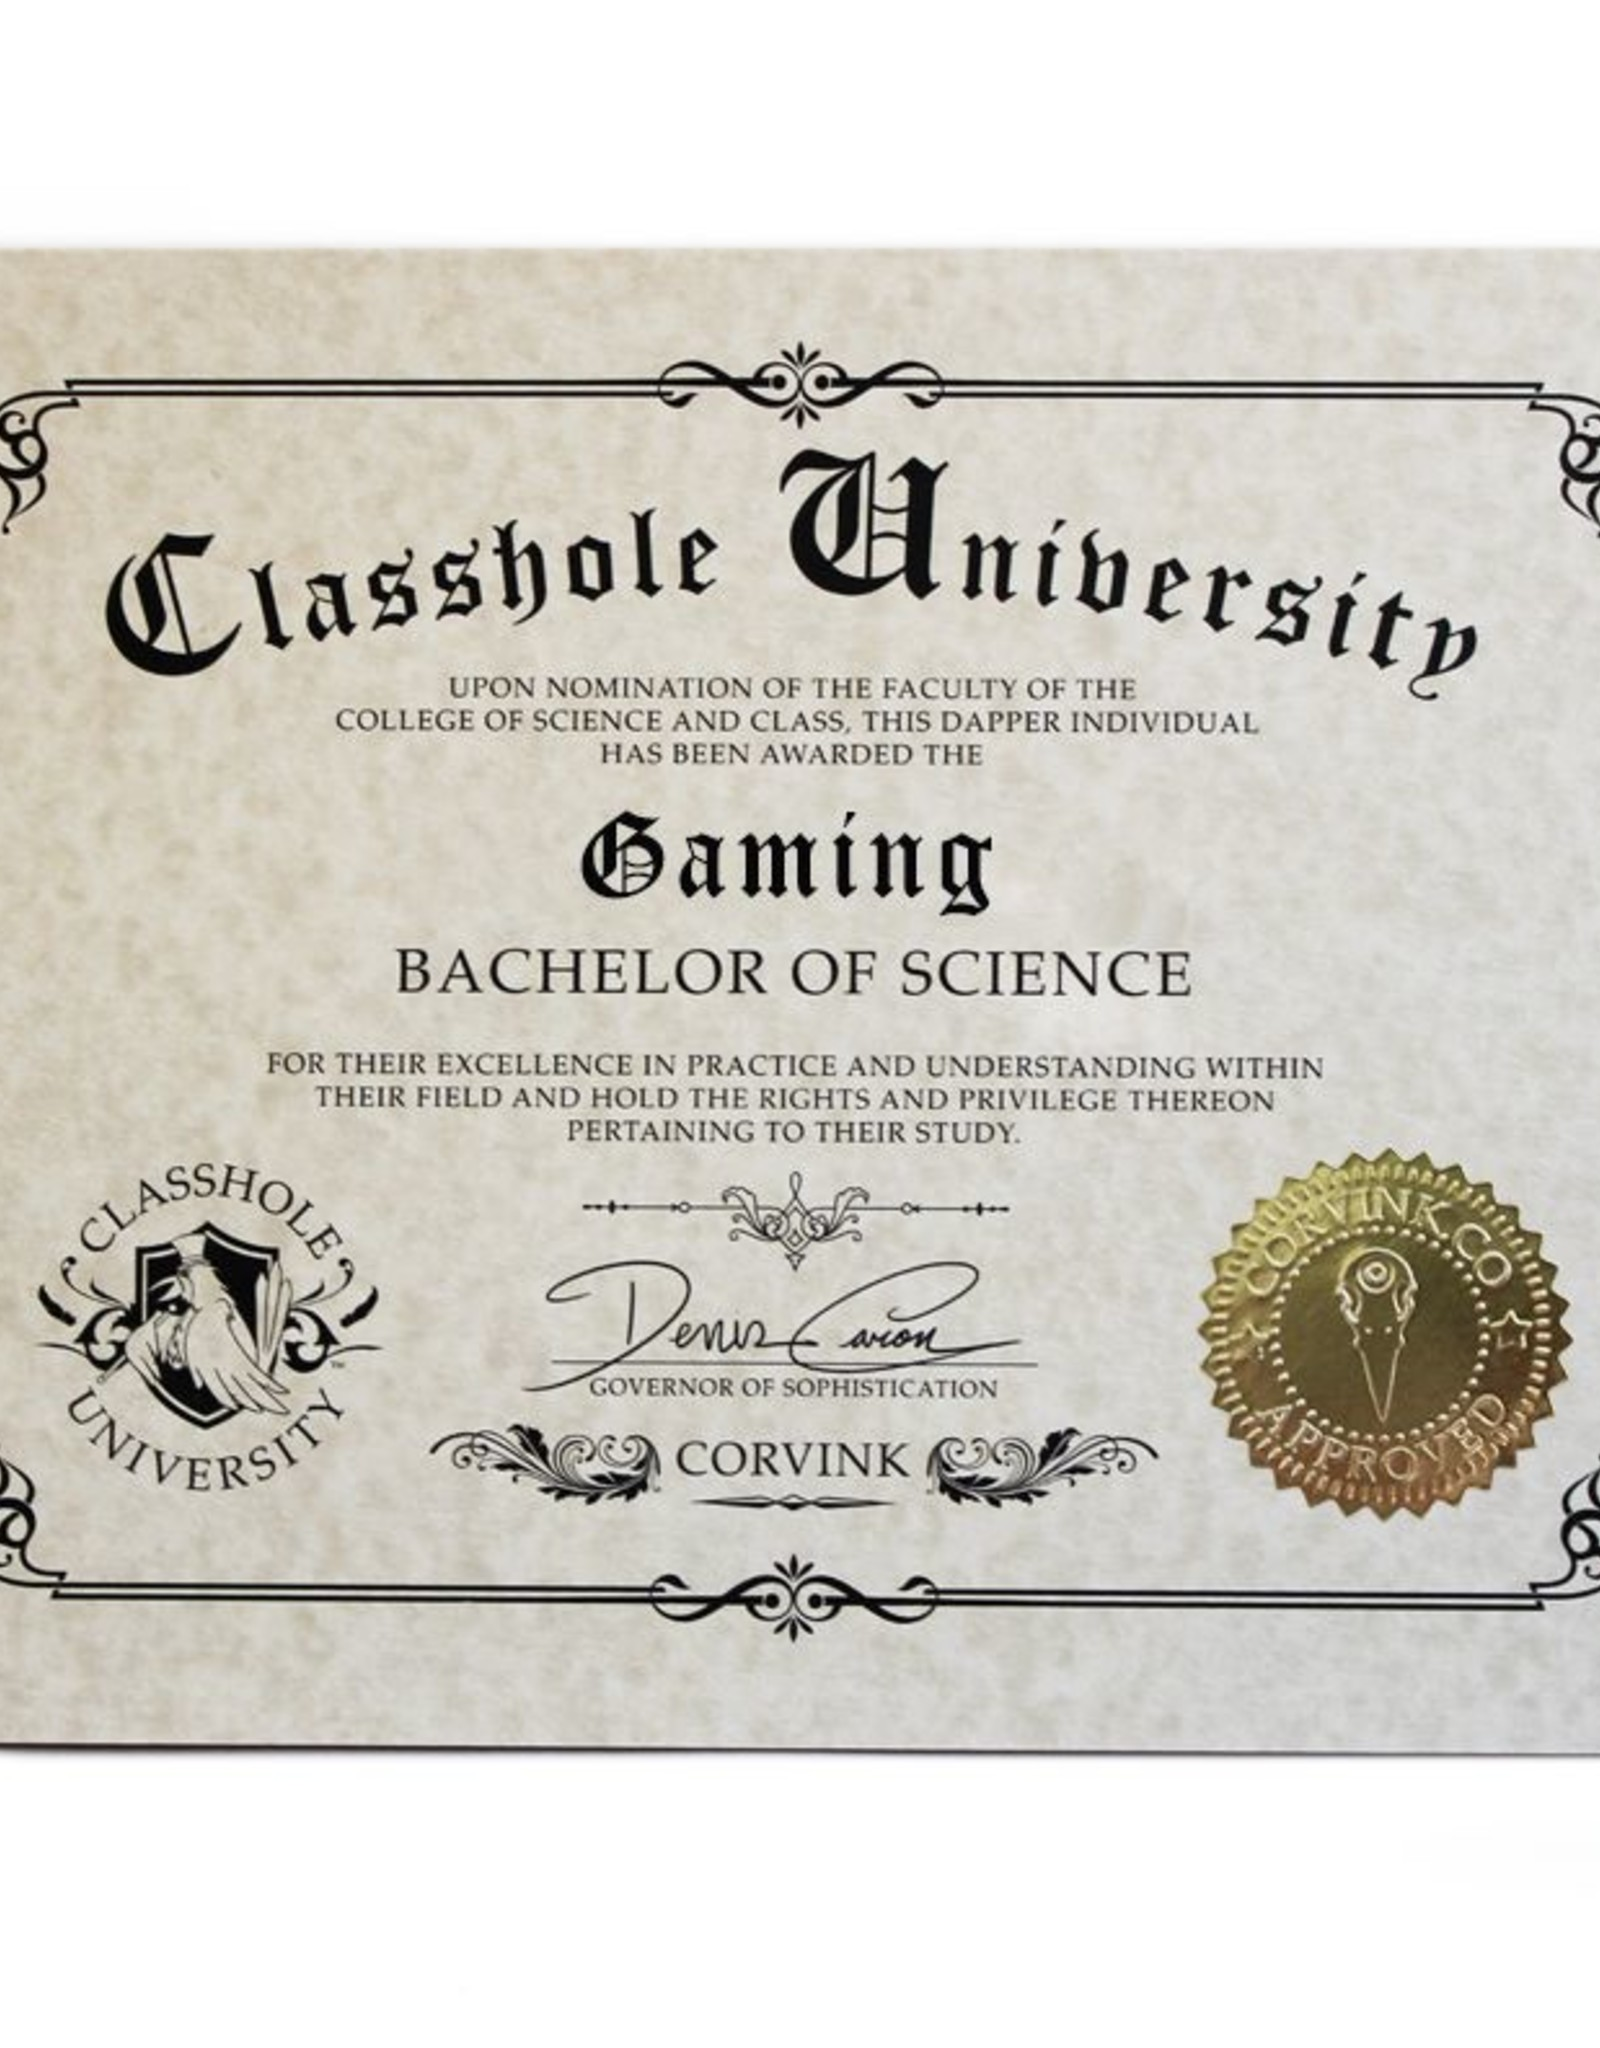 Classhole University BS Diplomas - Gaming